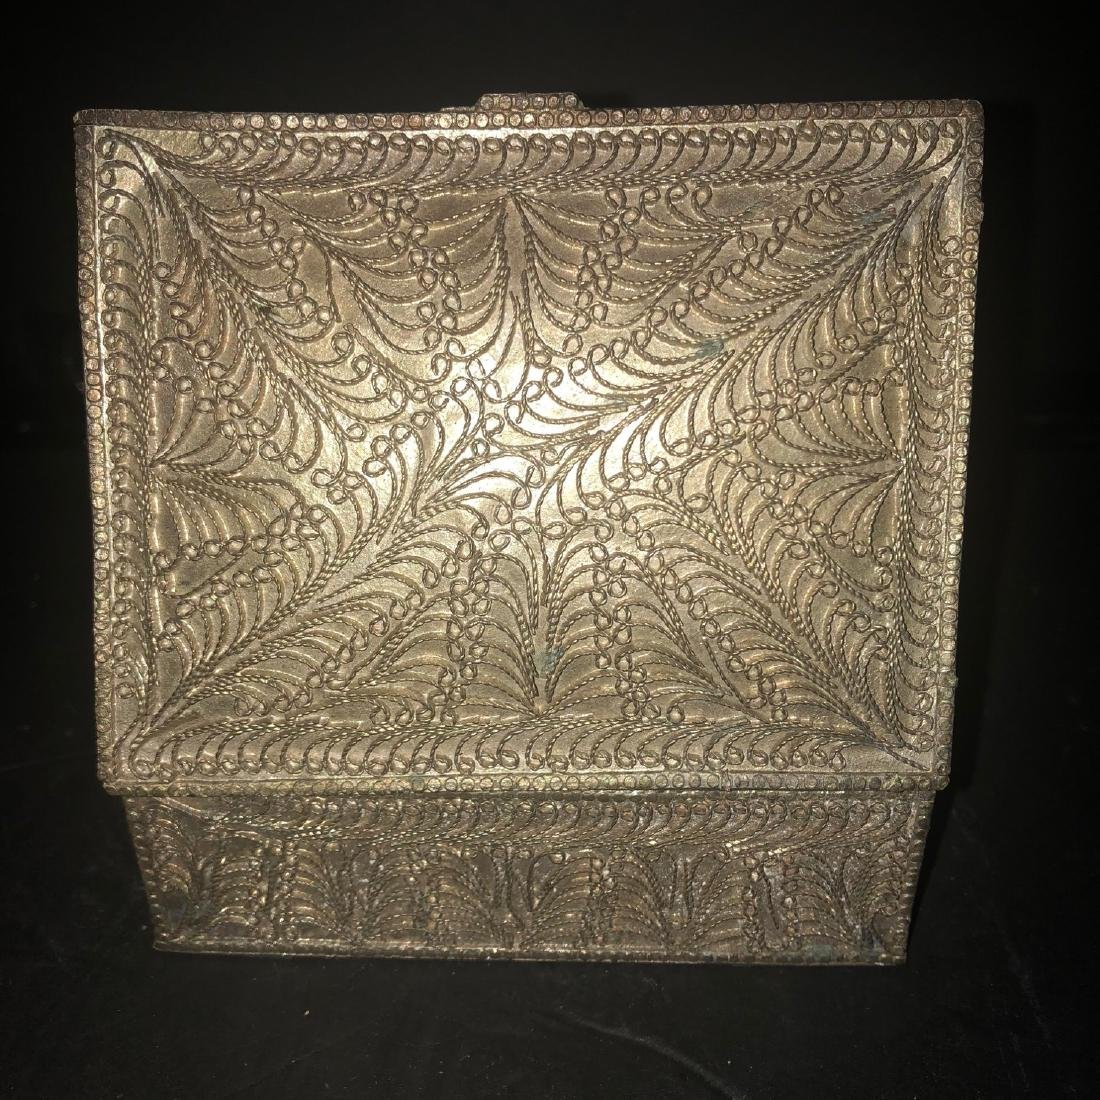 Antique Persian Solid Silver Cigarette Box 1890 - 5